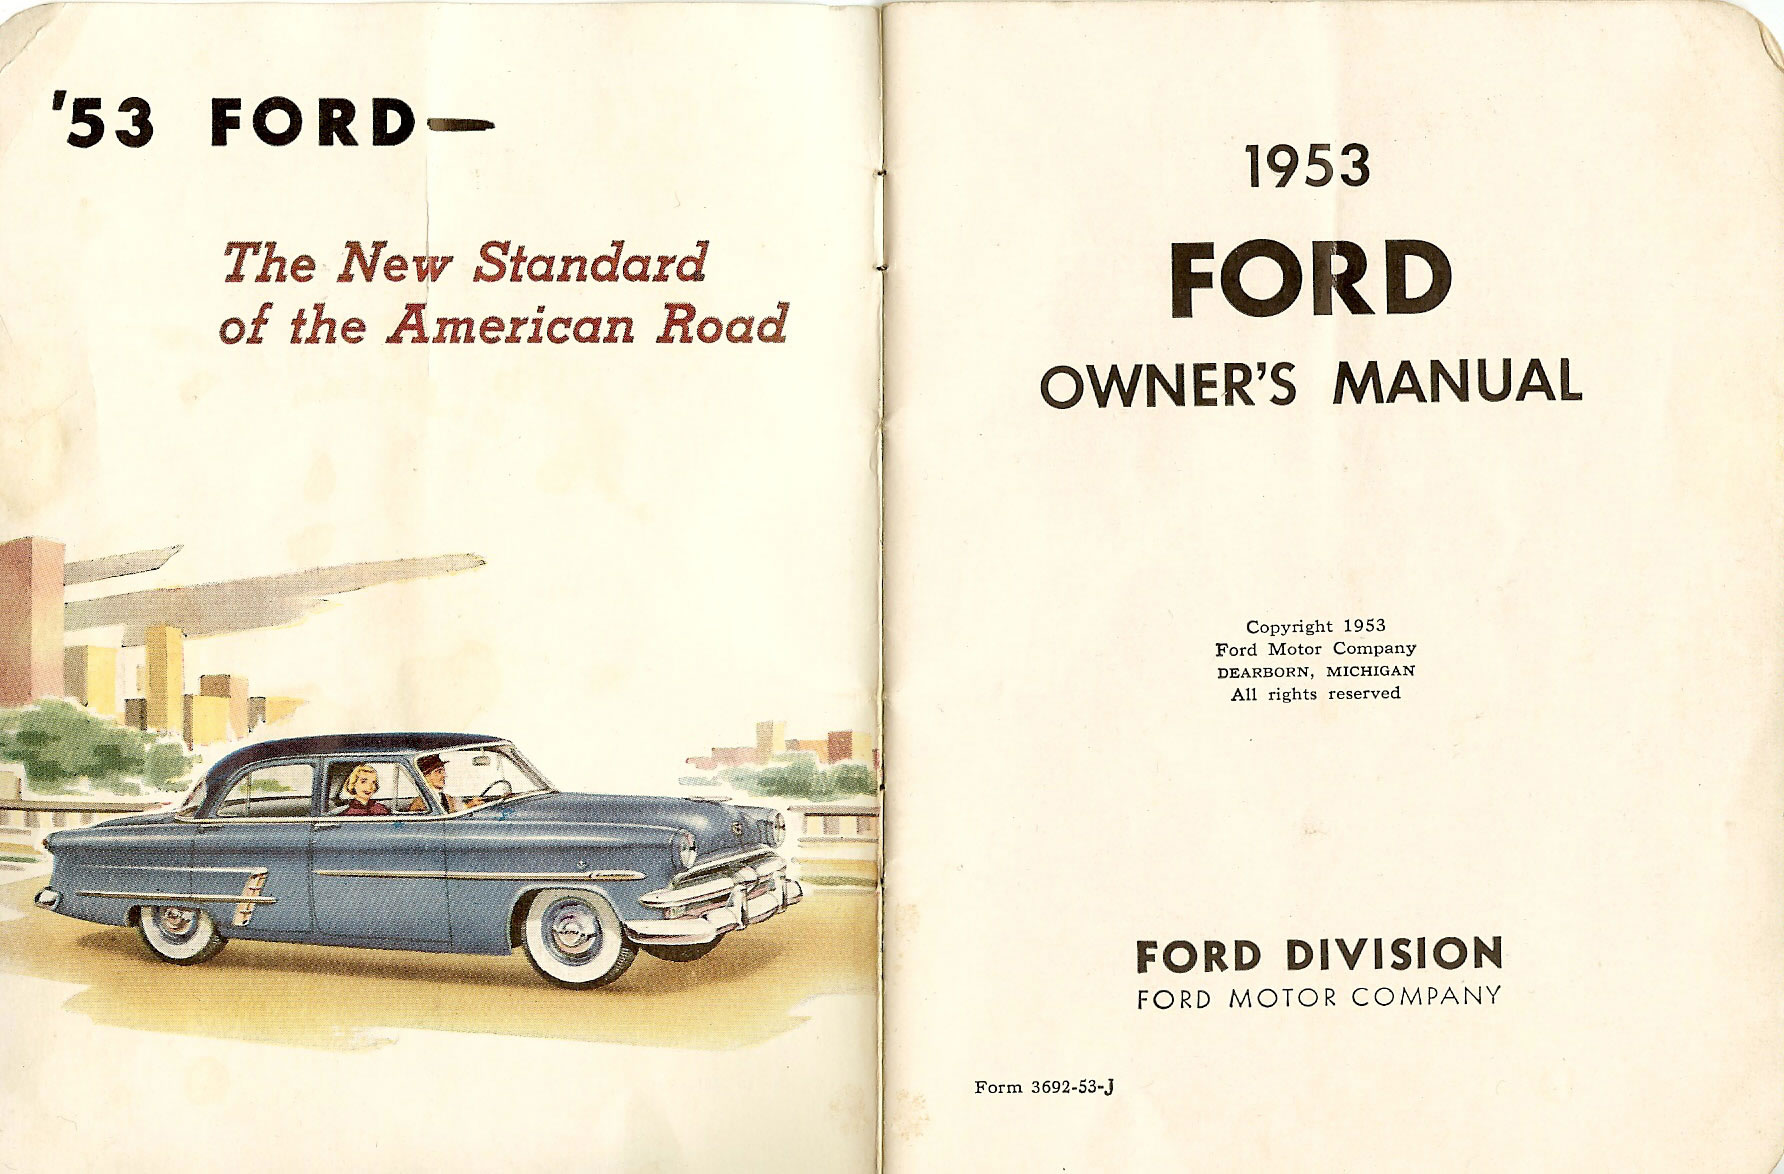 directory index ford 1953 ford 1953 ford owners manual rh oldcarbrochures com owner manual ford explorer 2002 owner manual ford taurus 2002